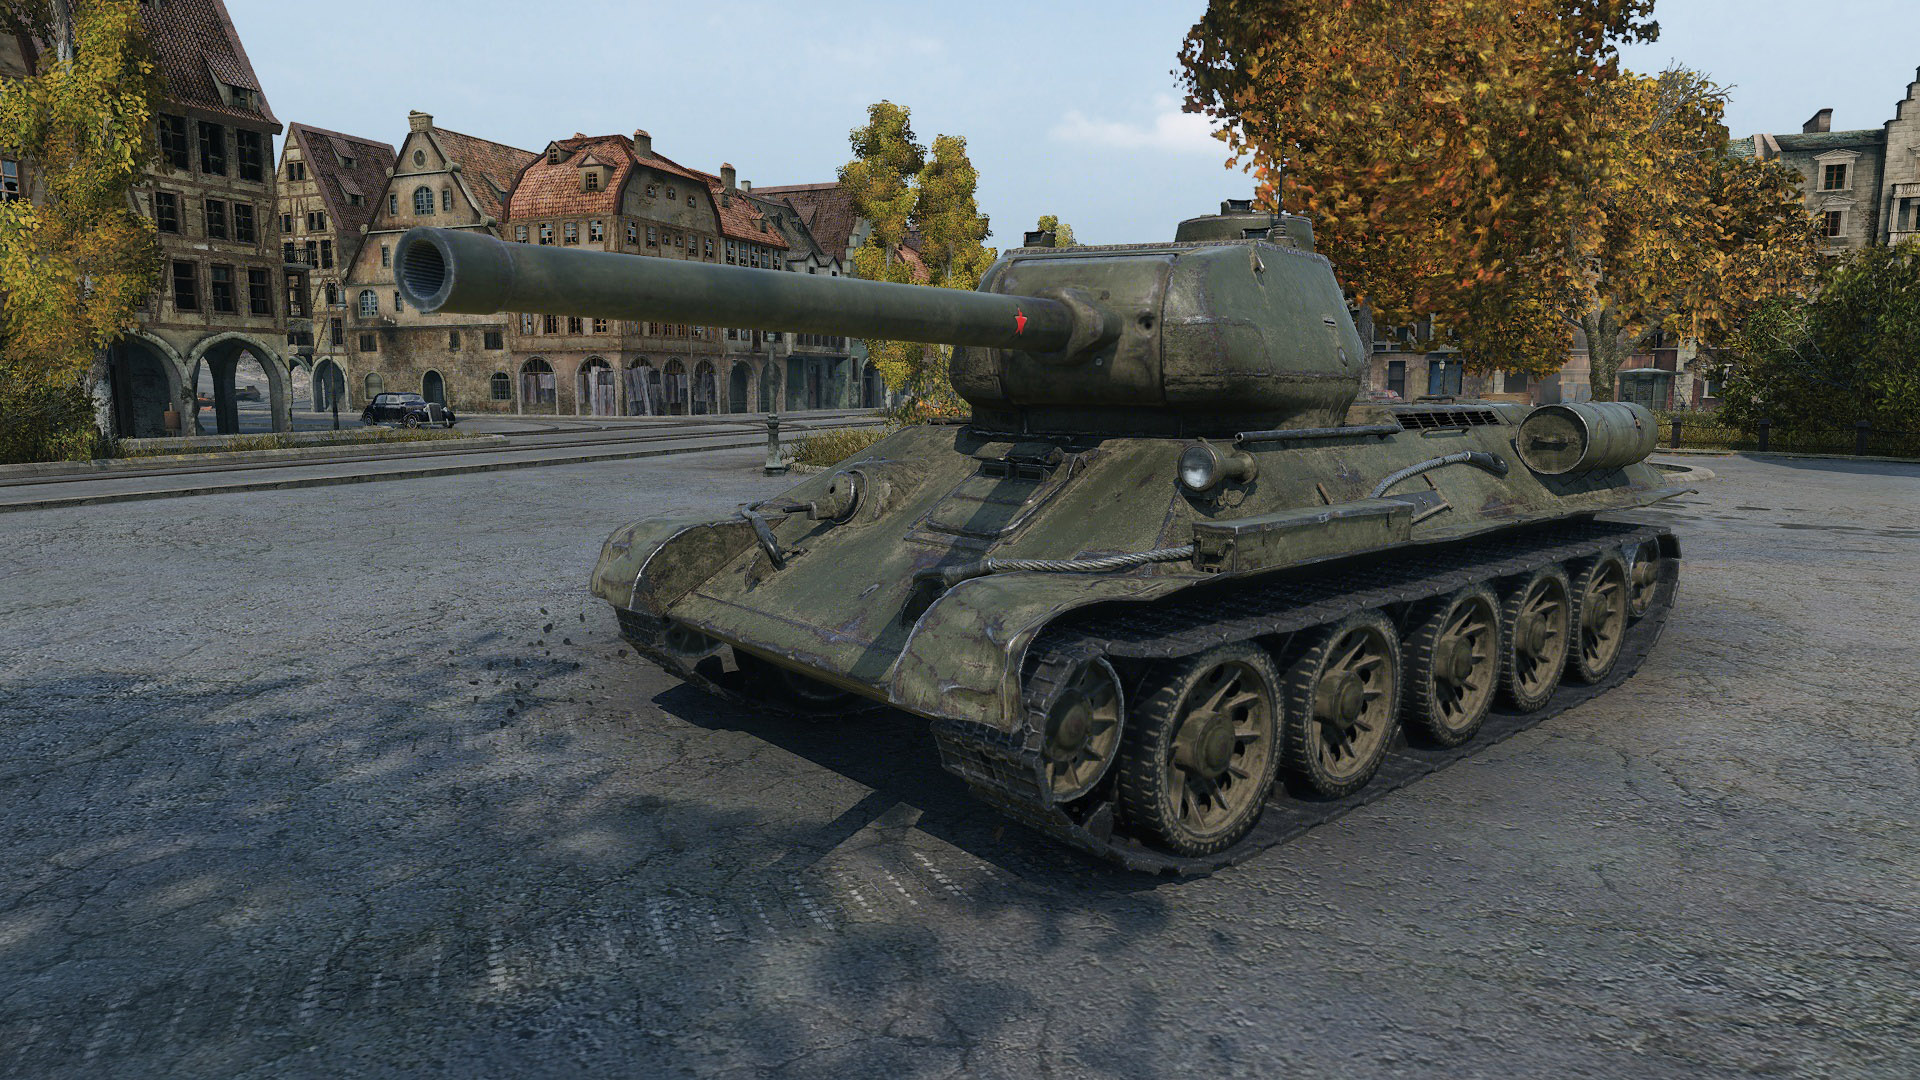 t 34-85m matchmaking